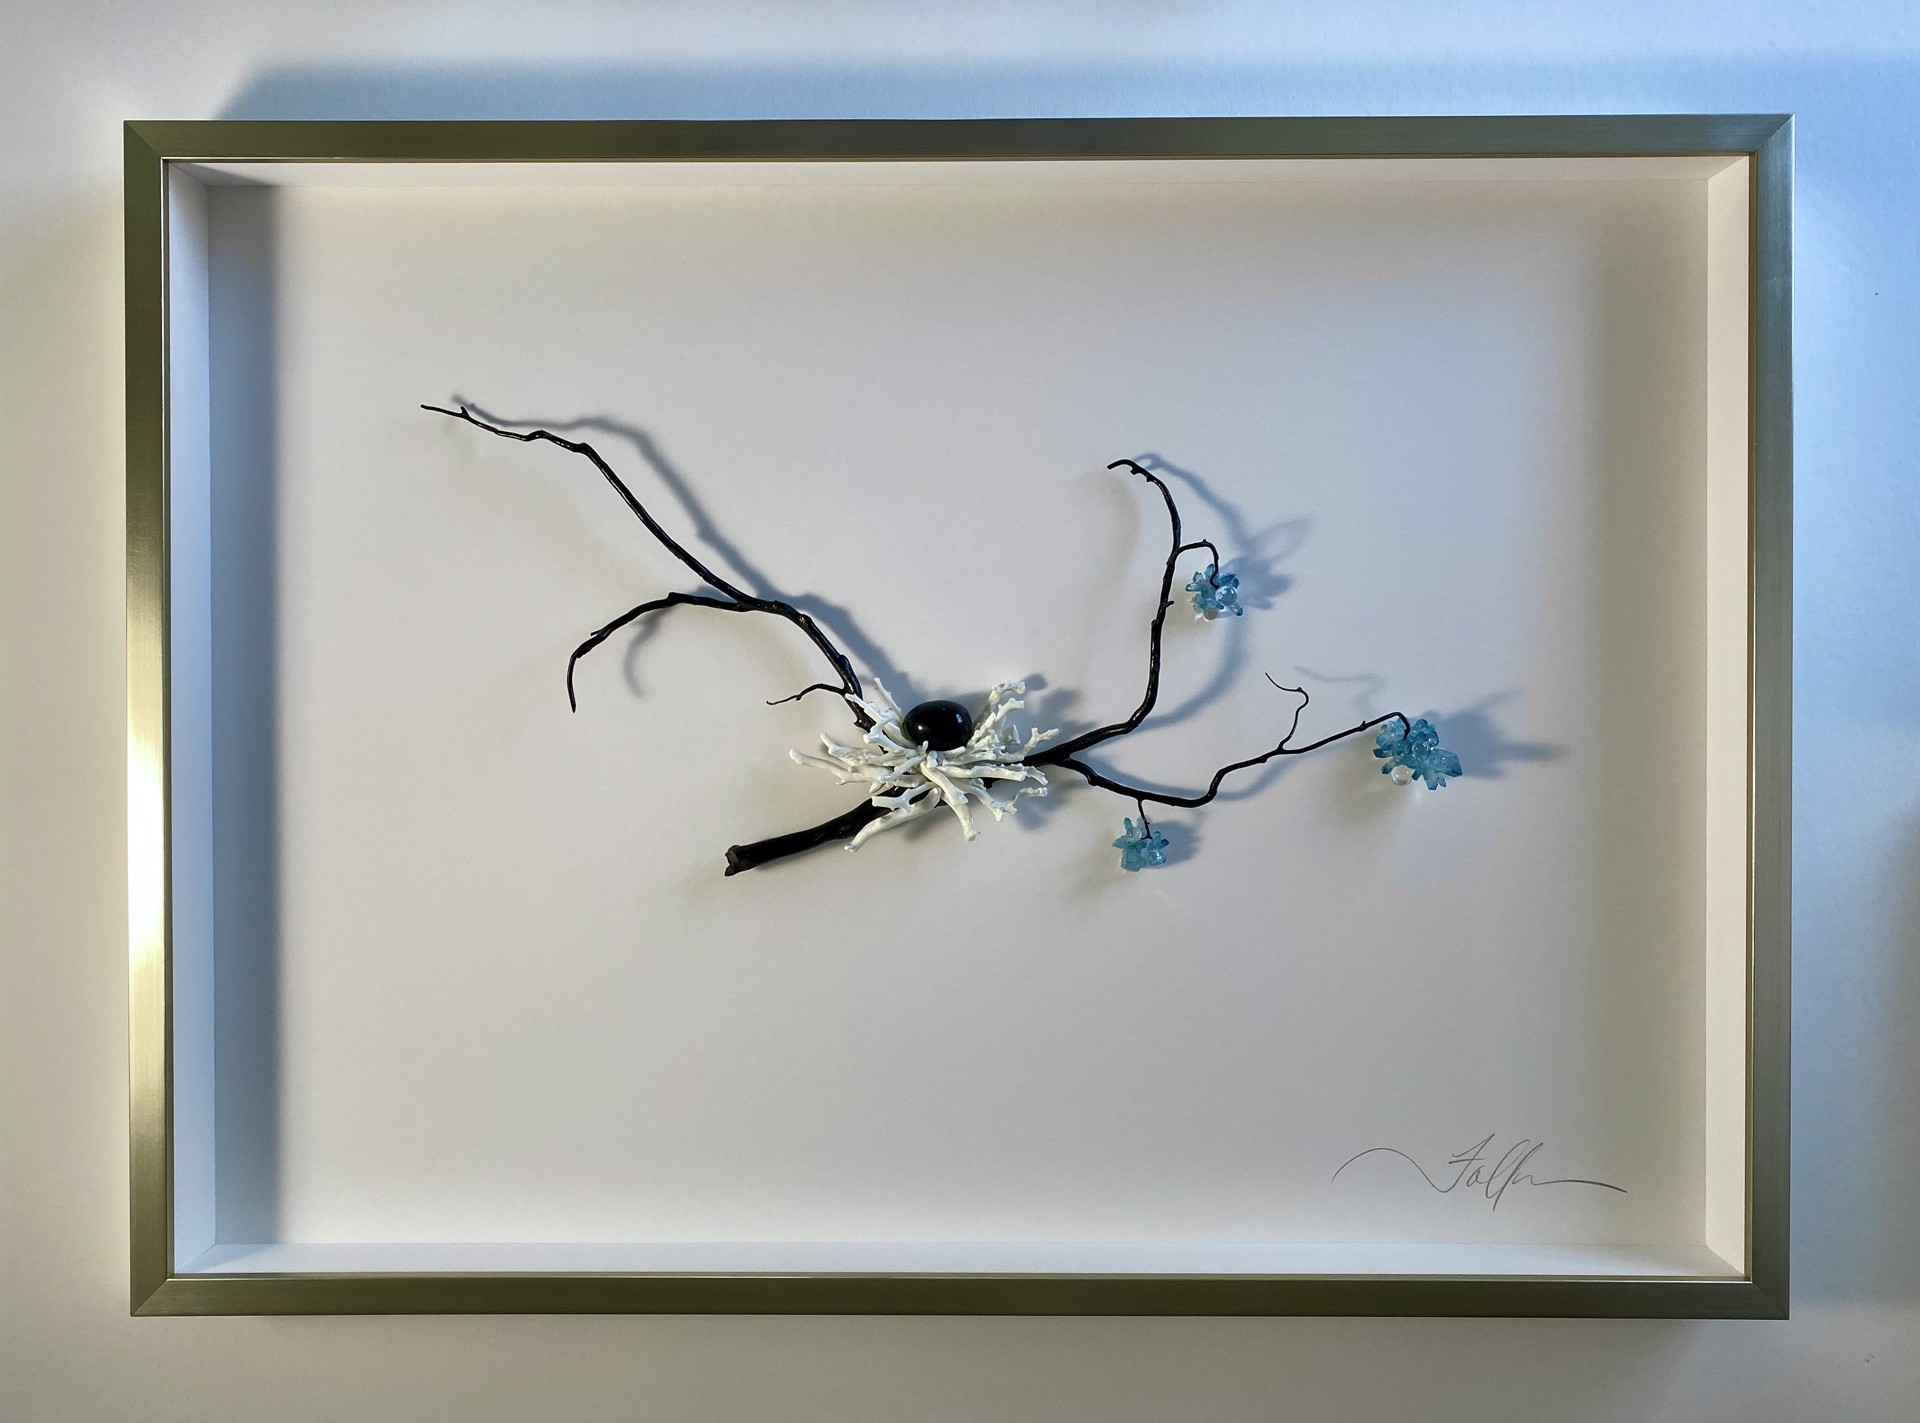 Nested Branch with Blue Blossoms by Fallon